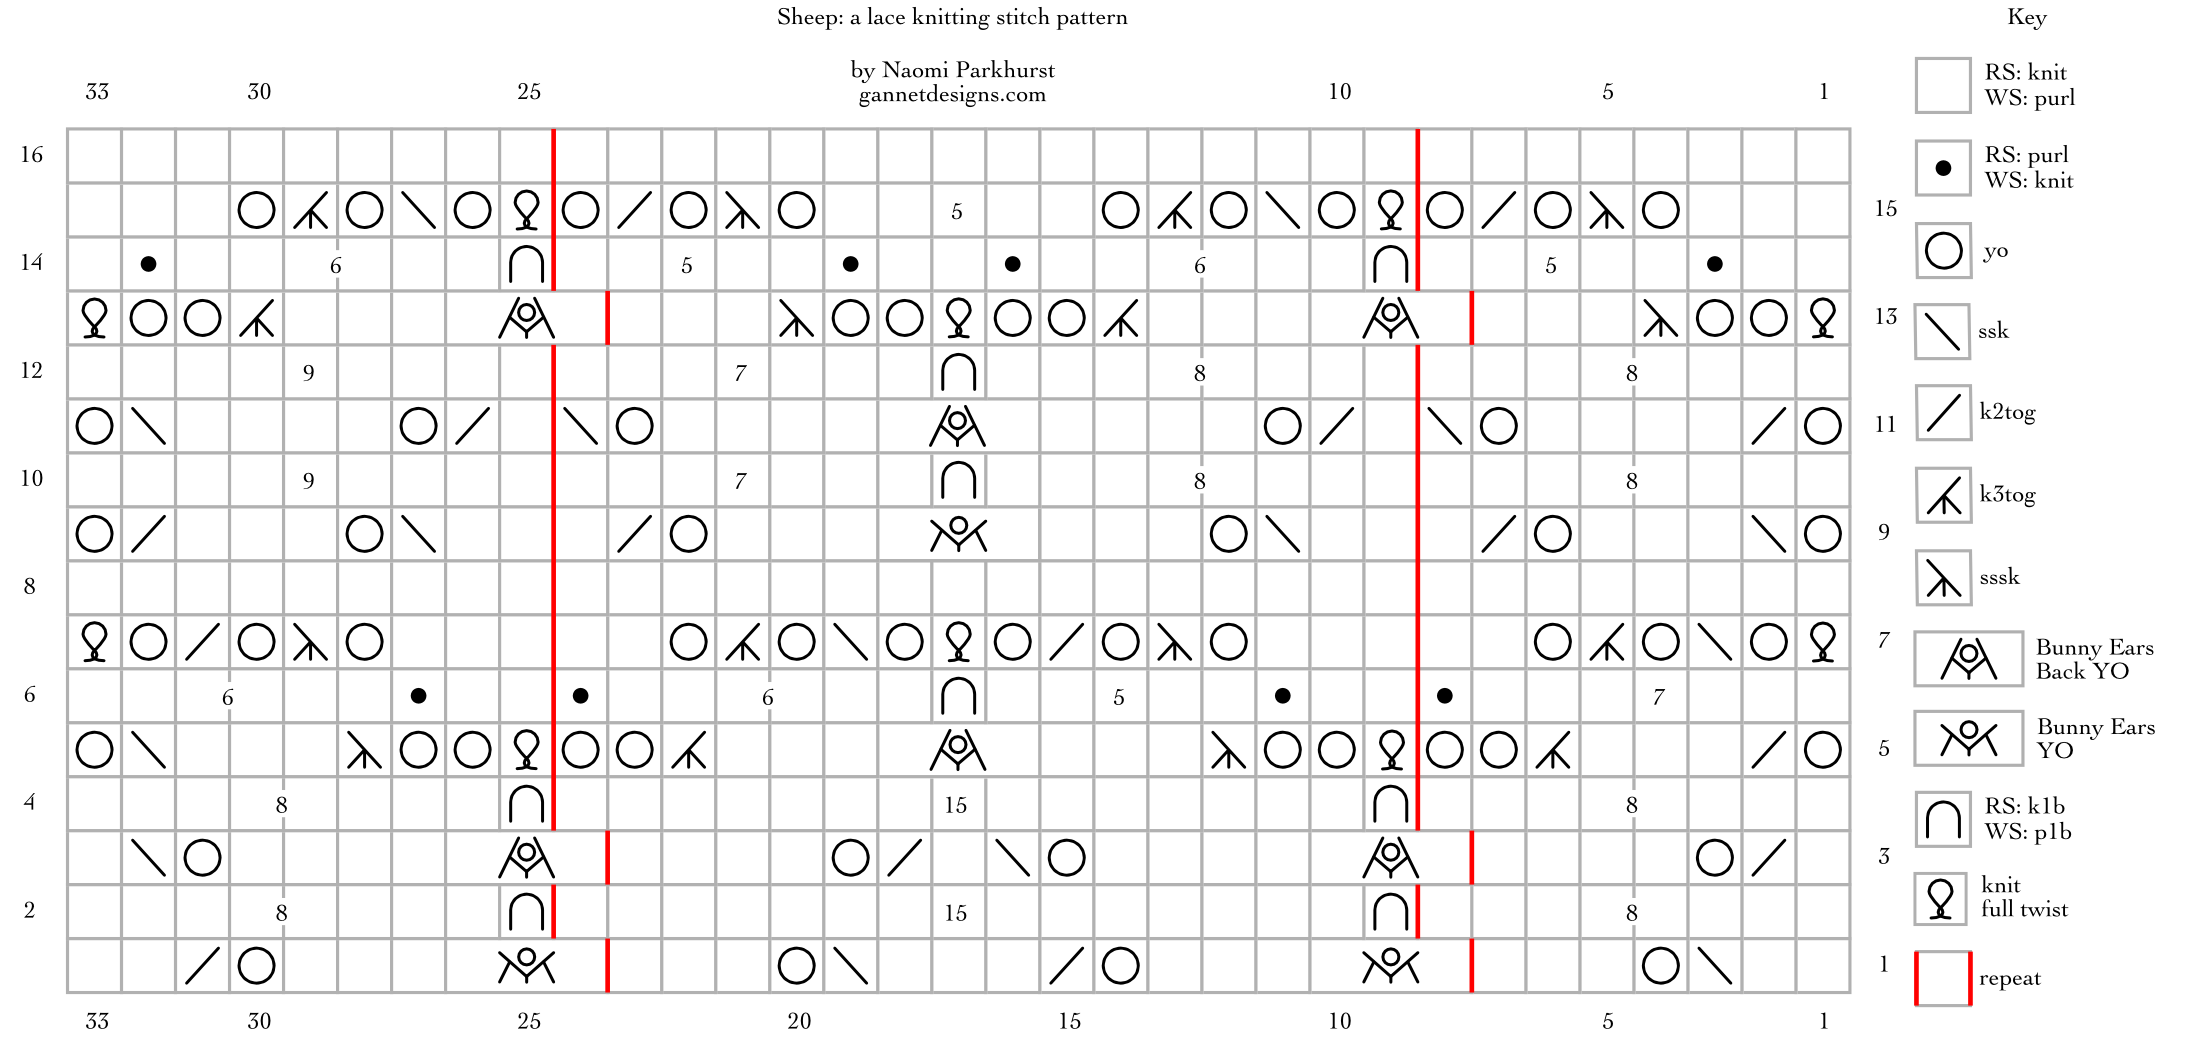 chart showing how to knit Sheep lace by means of special symbols; written instructions are in blog post.